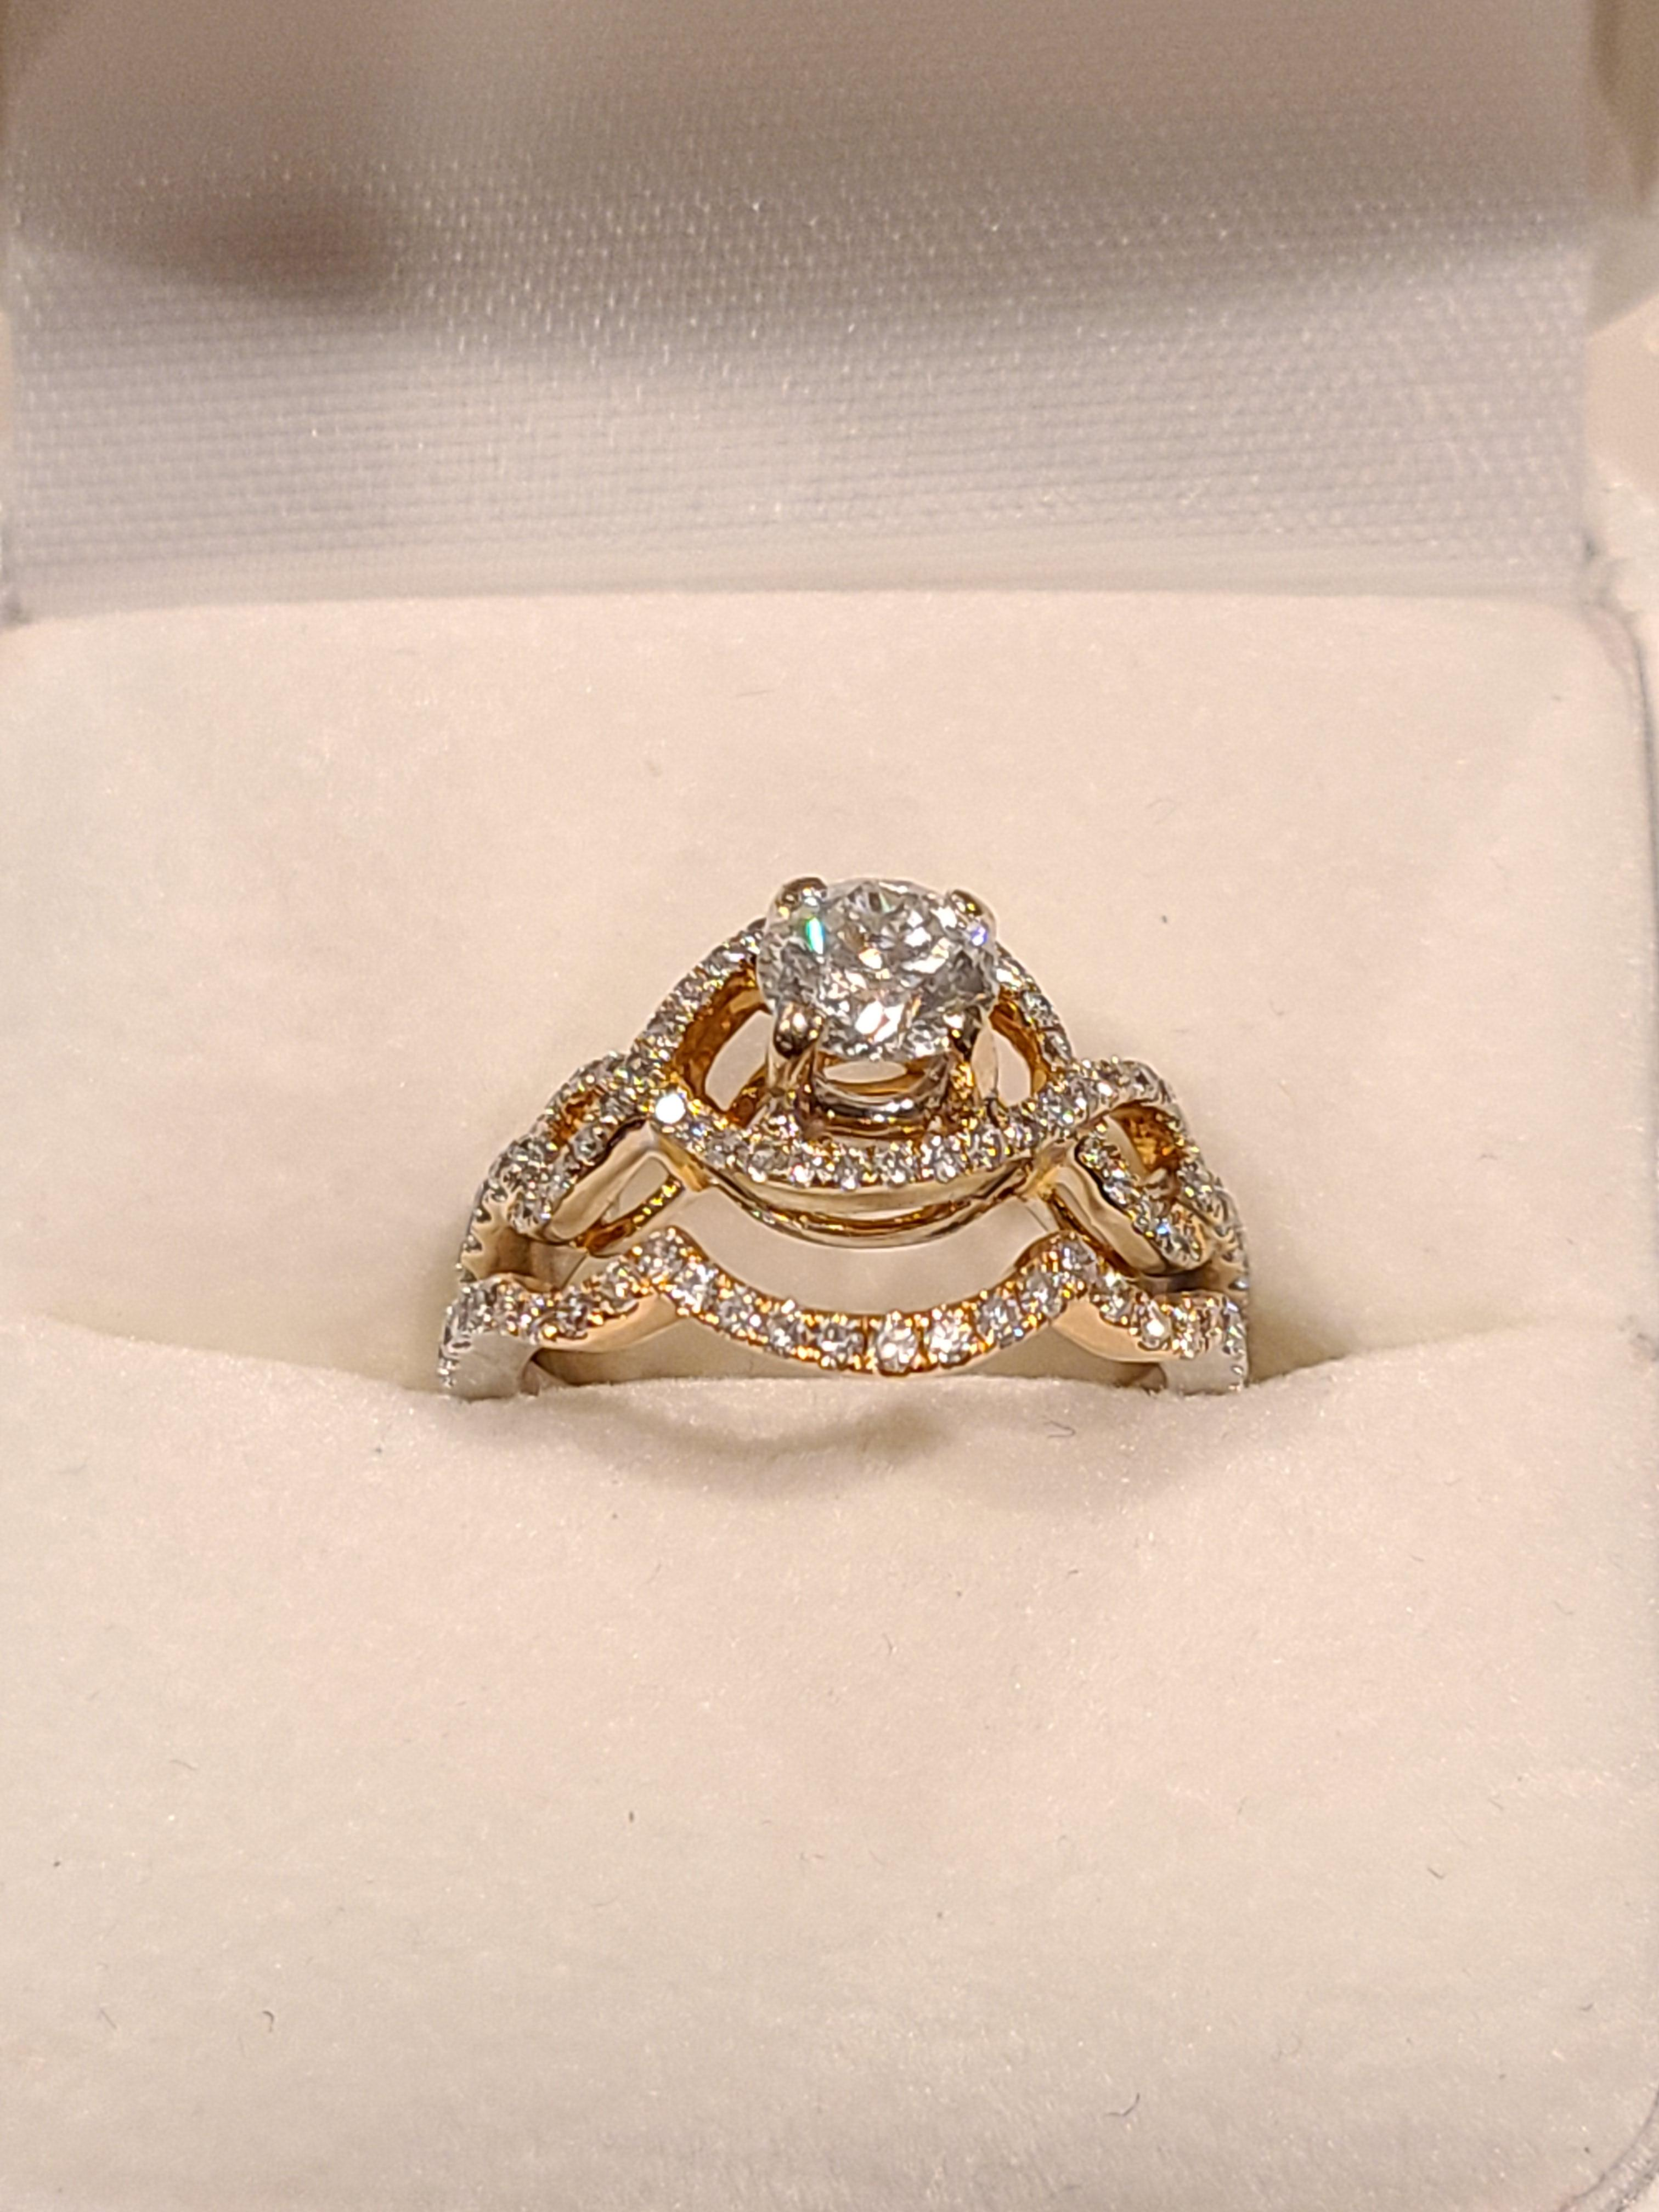 18kt. Two-tone white and